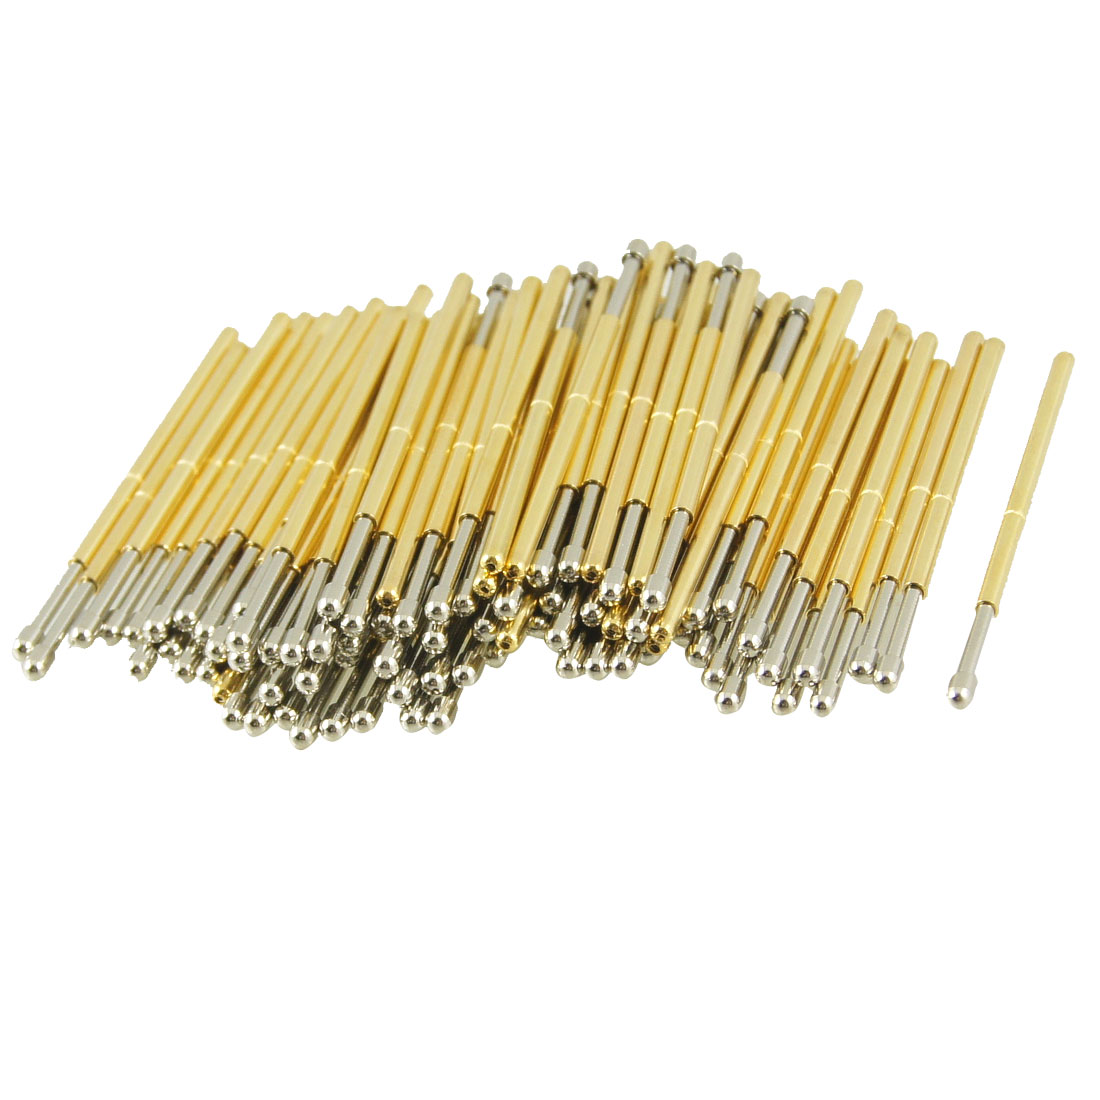 100 Pcs 9100D 1.5mm Spherical Radius Tip Dia Spring Test Probes Pins